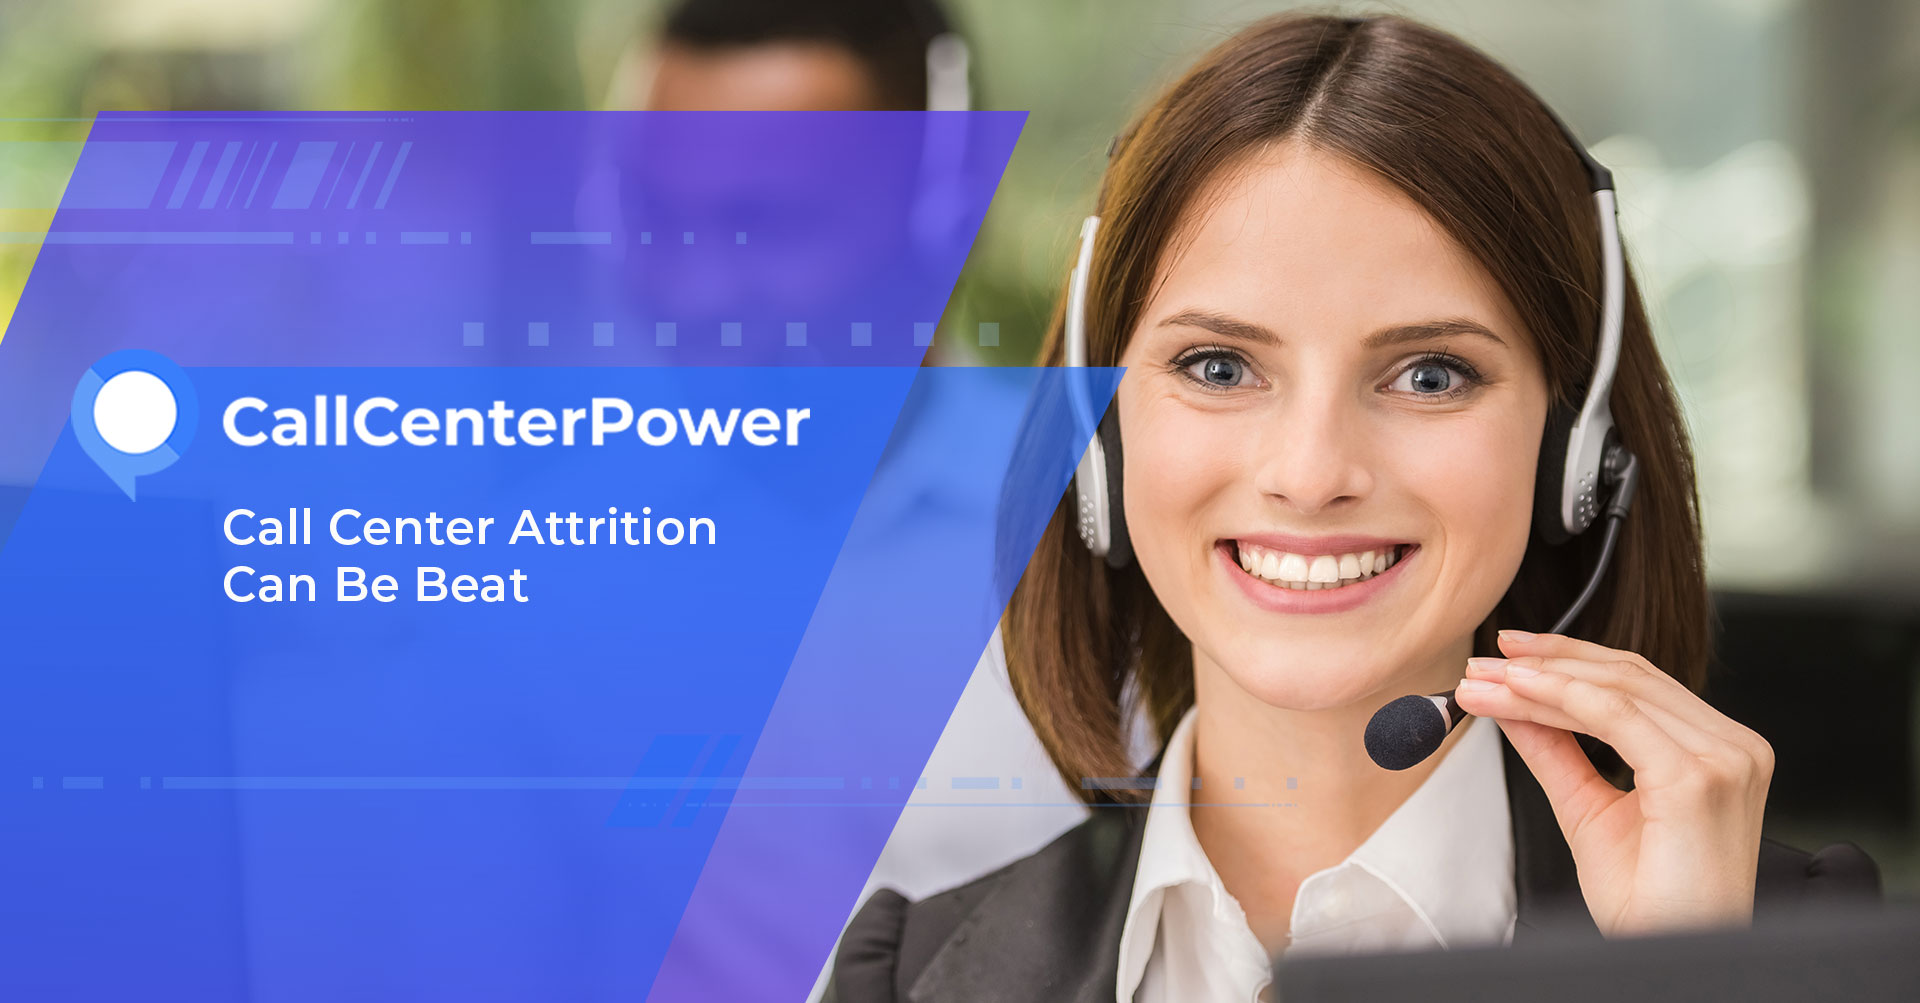 Call Center Attrition Can Be Beat